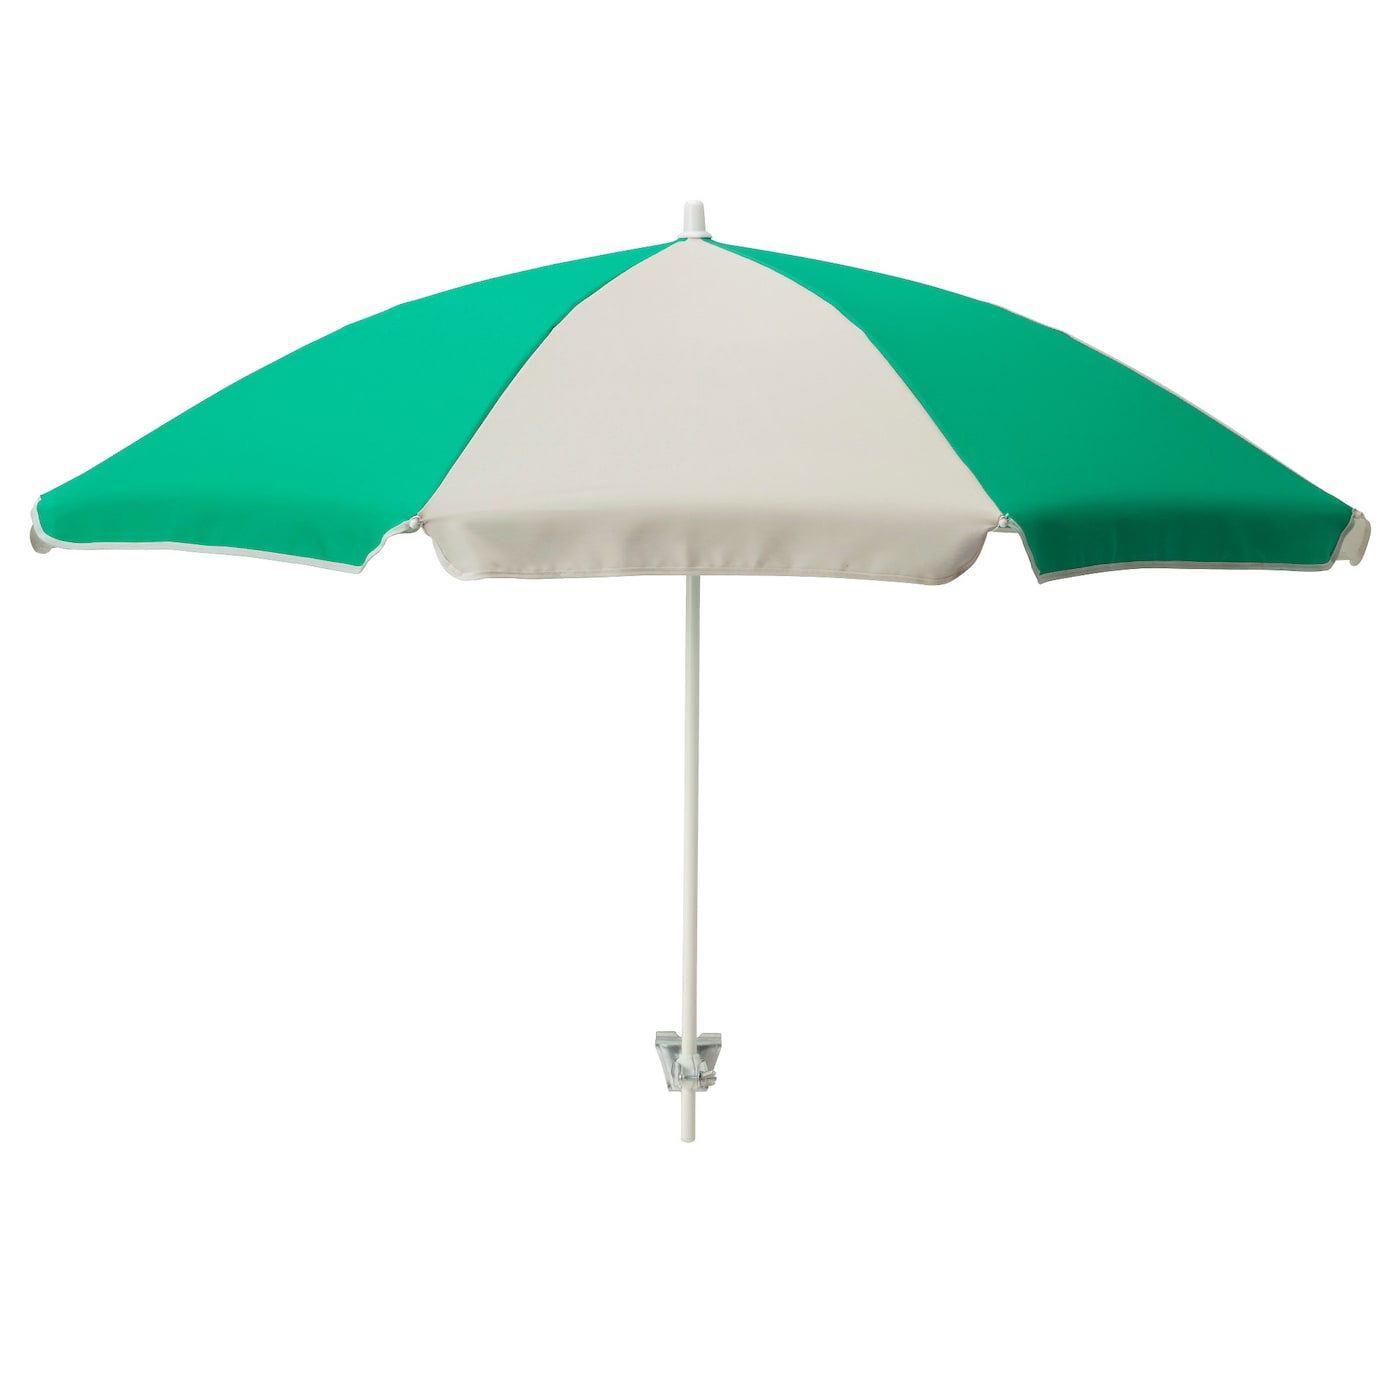 IKEA RAMSÖ parasol Easy to attach and move as it has a screw socket.